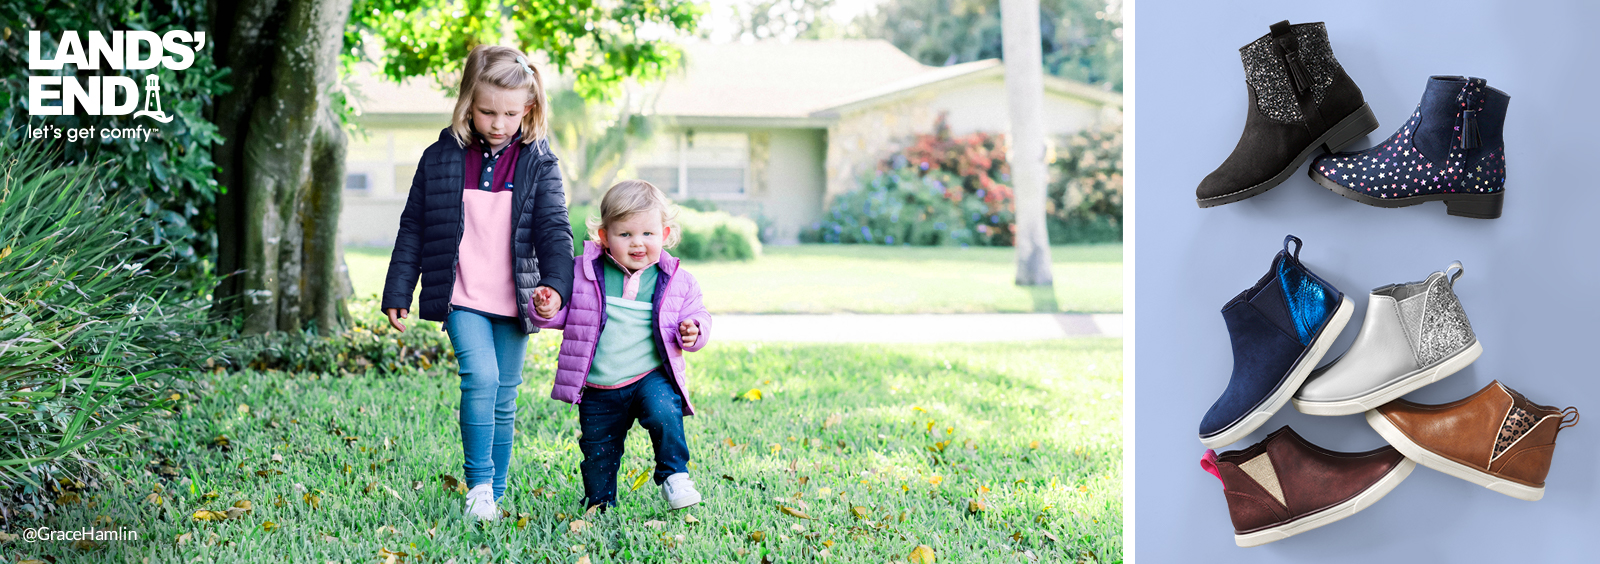 Best Kids' Shoes for Running Around the Backyard